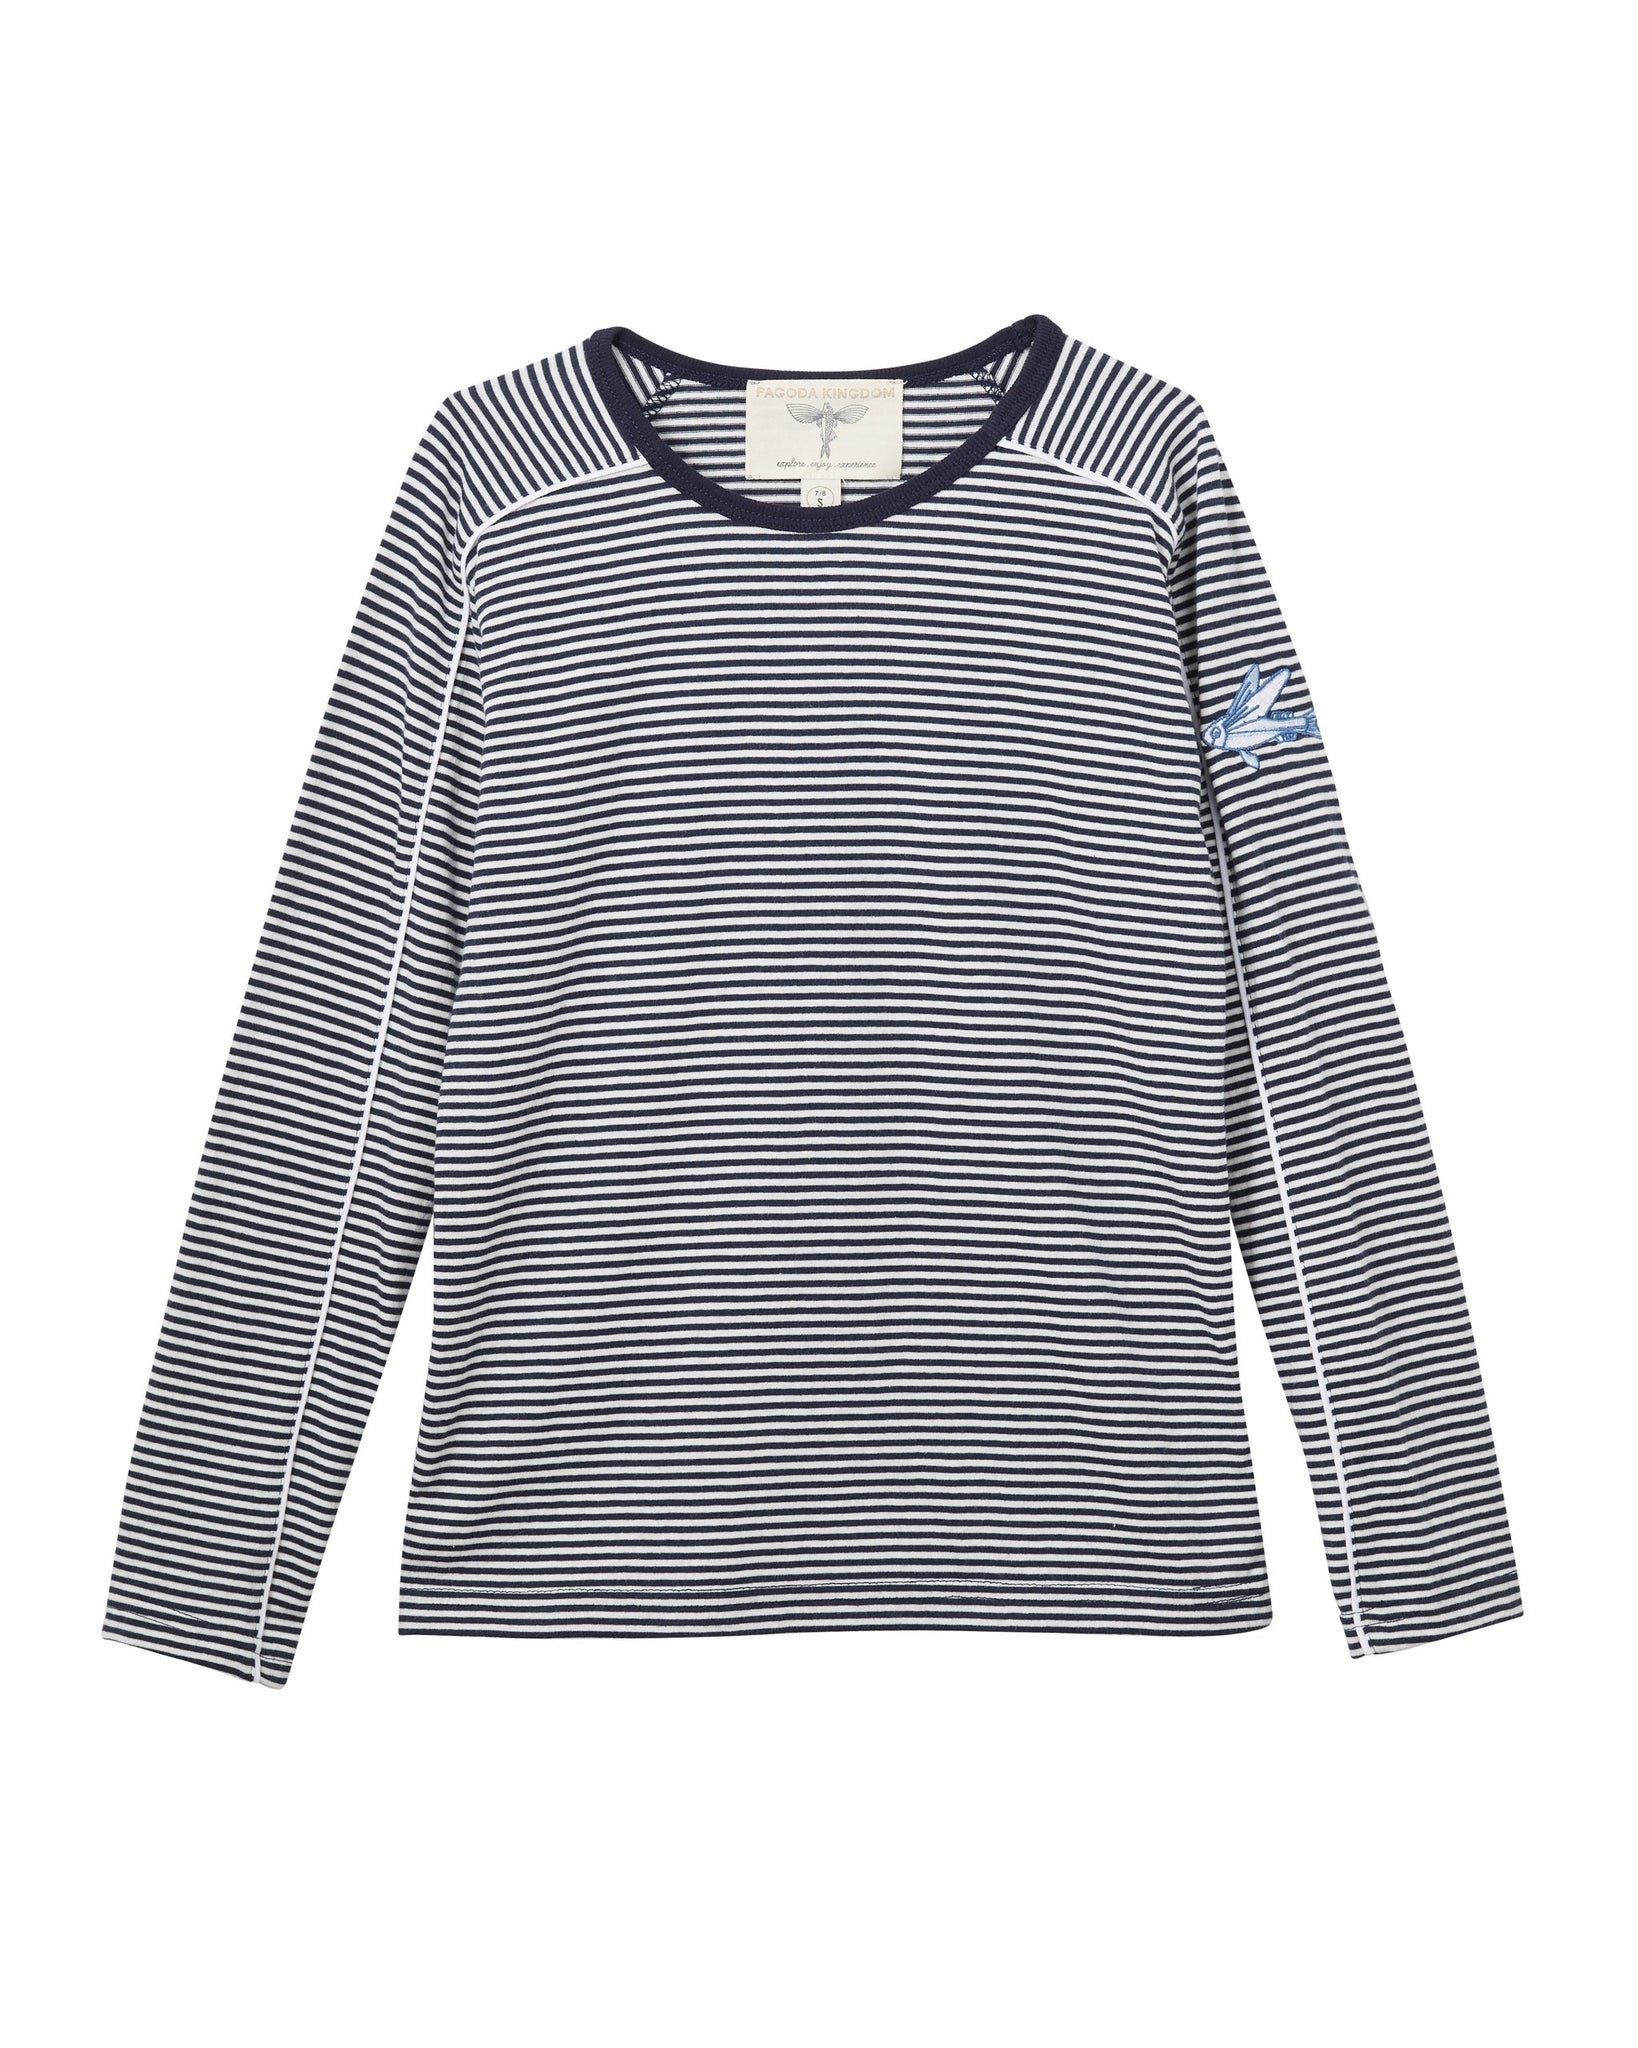 MANO PLUS | Pagoda Kingdom | IKANN Navy Stripe T-Shirt